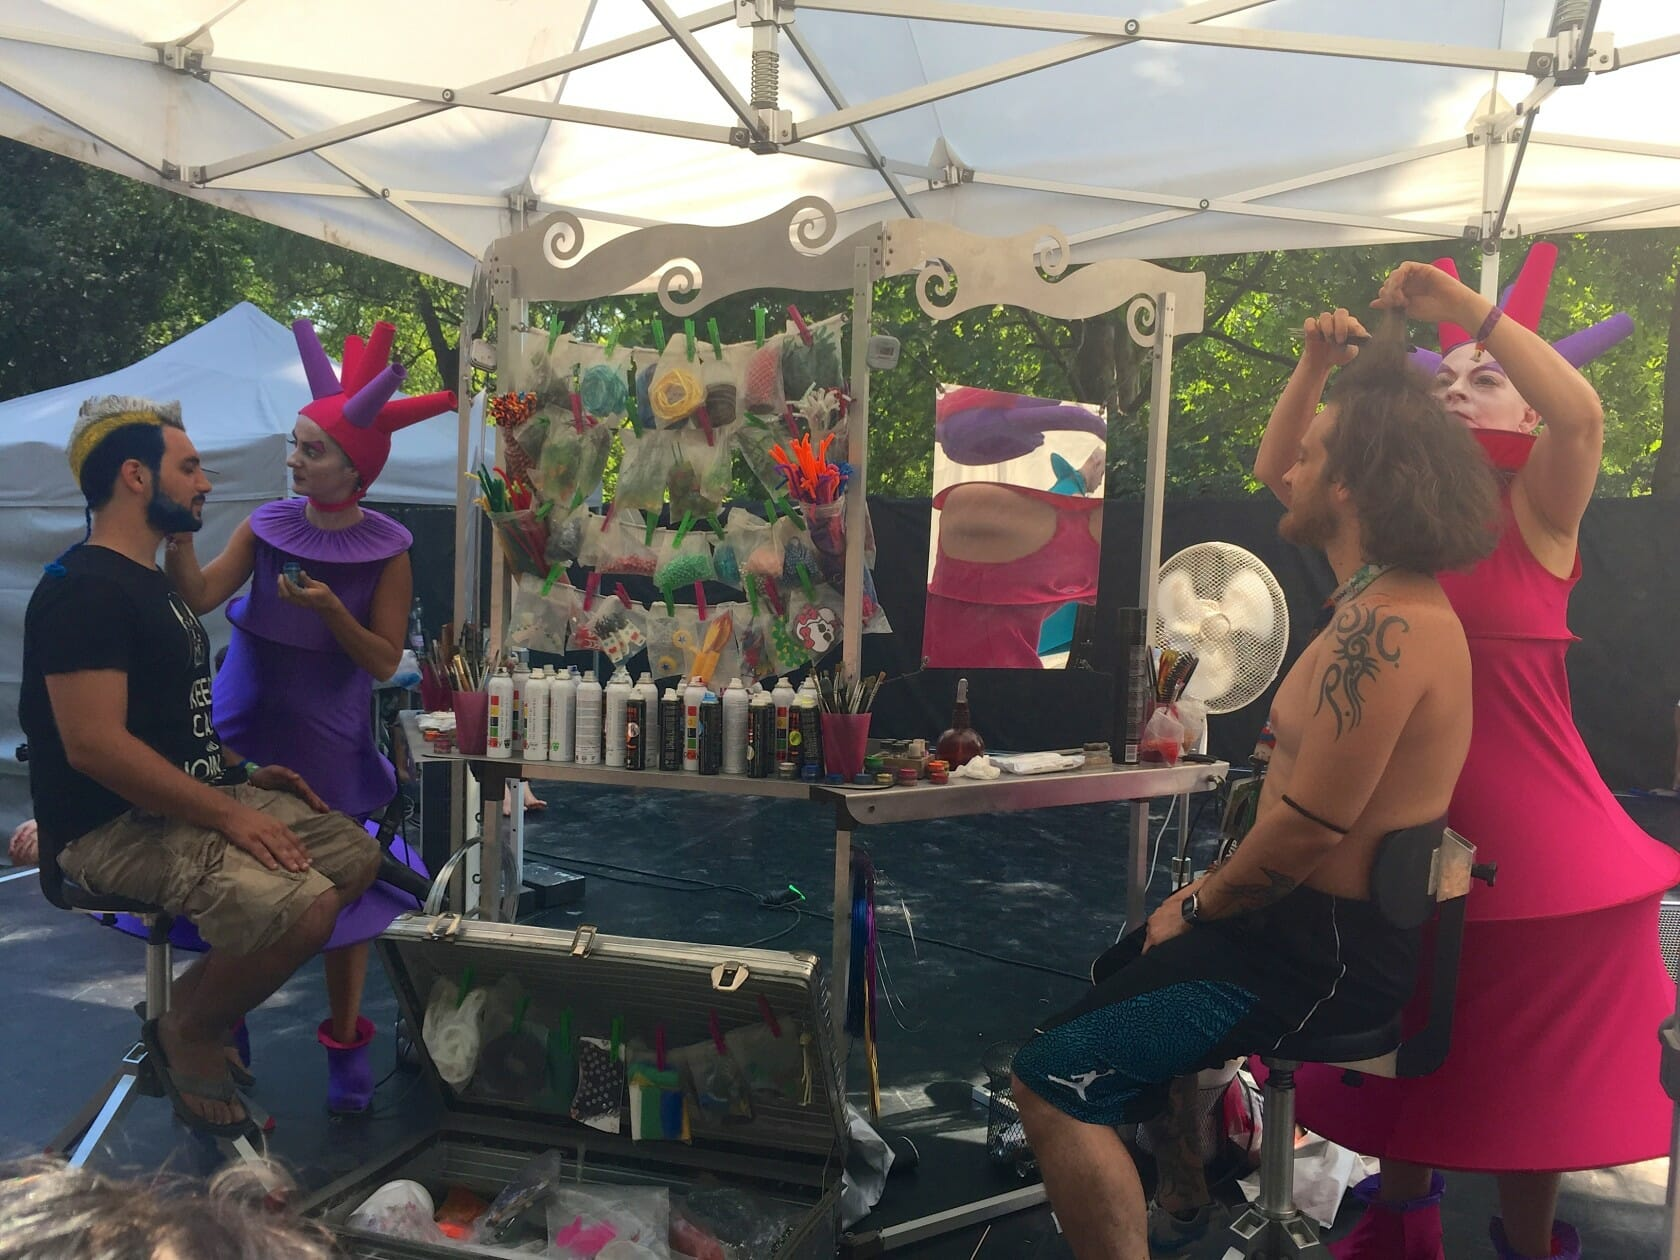 sziget review + festival guide for sziget festival in budapest august hair styling mobile cart